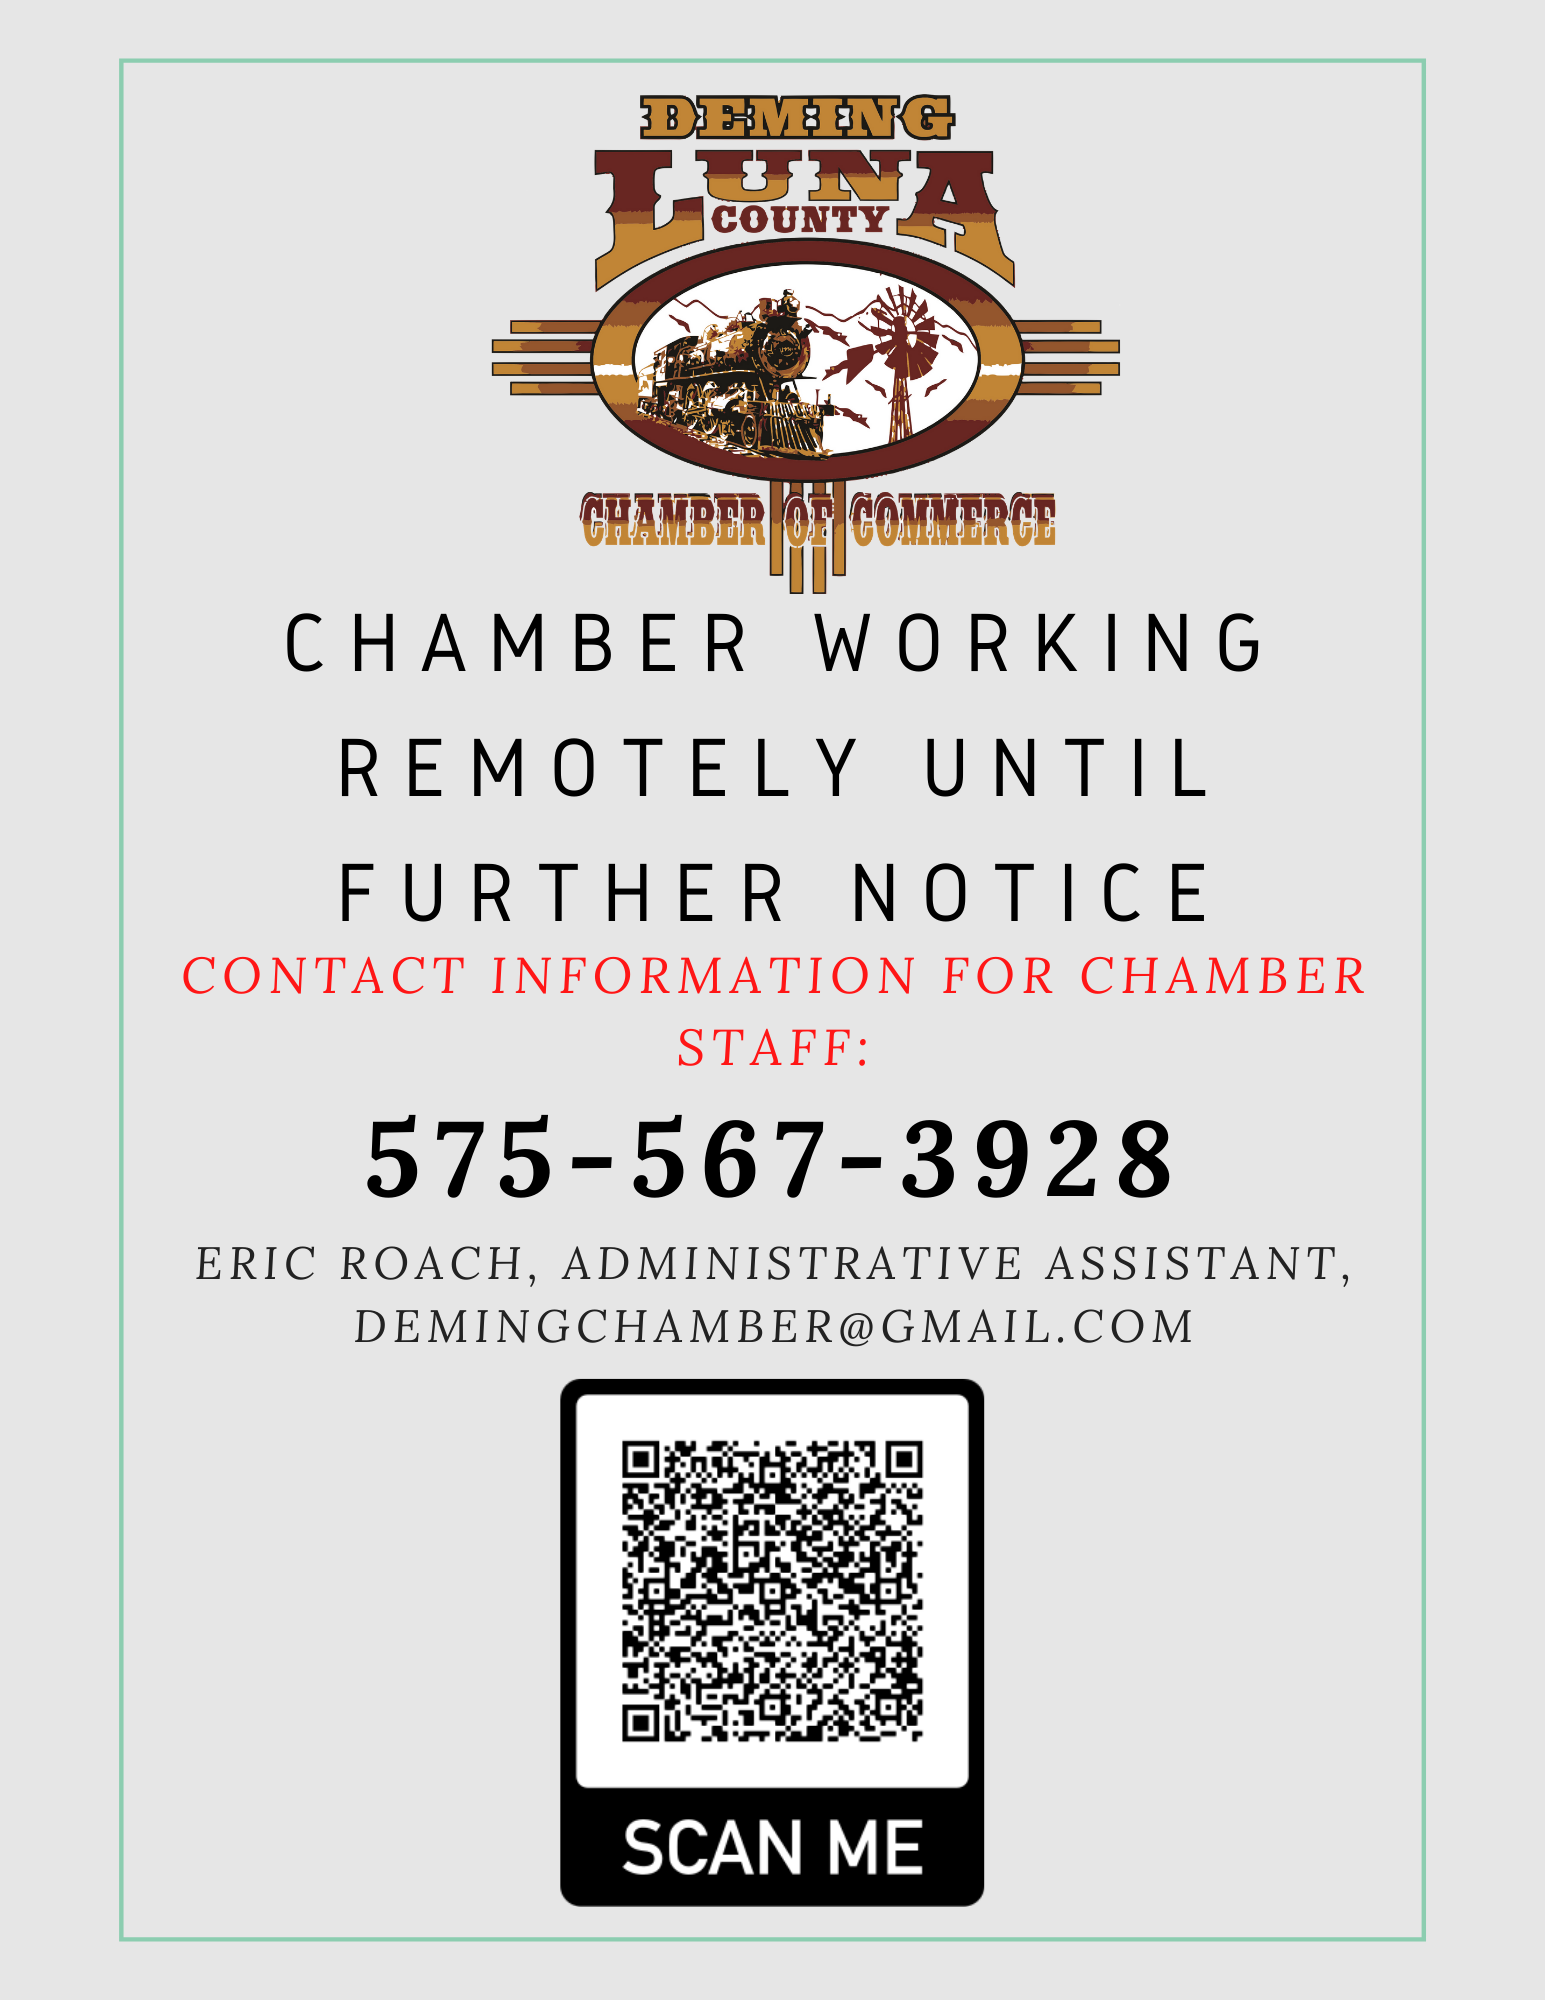 Chamber Remote Flyer